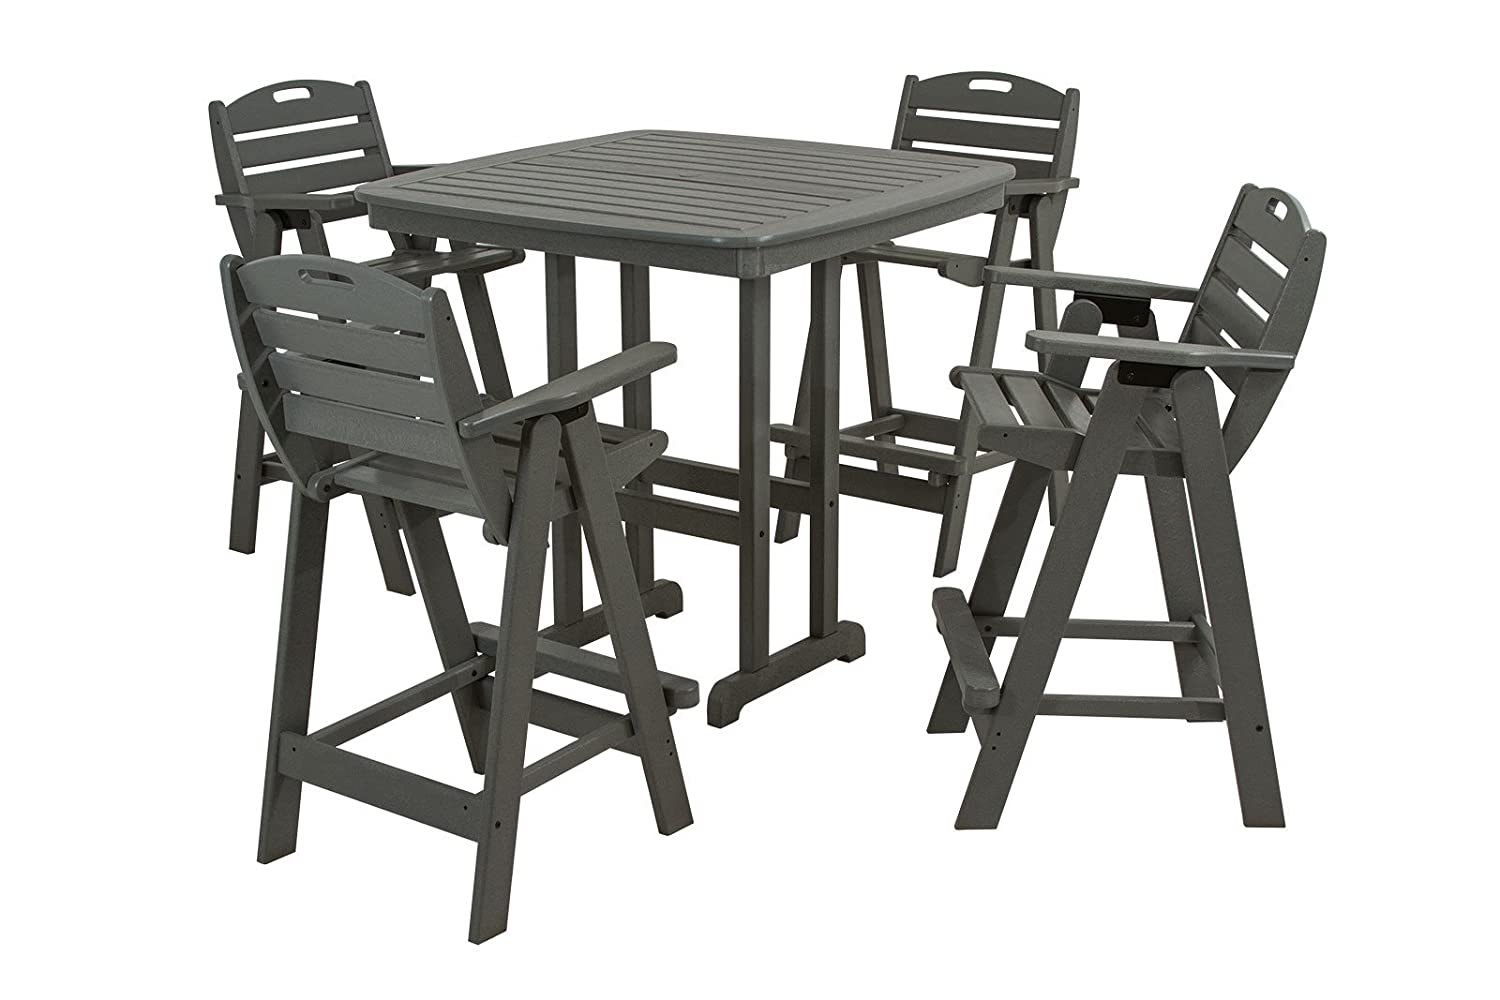 Perfect Amazon.com : POLYWOOD PWS144 1 GY Nautical 5 Piece Bar Set With Table And  Chair, Slate Grey : Patio Chairs : Garden U0026 Outdoor